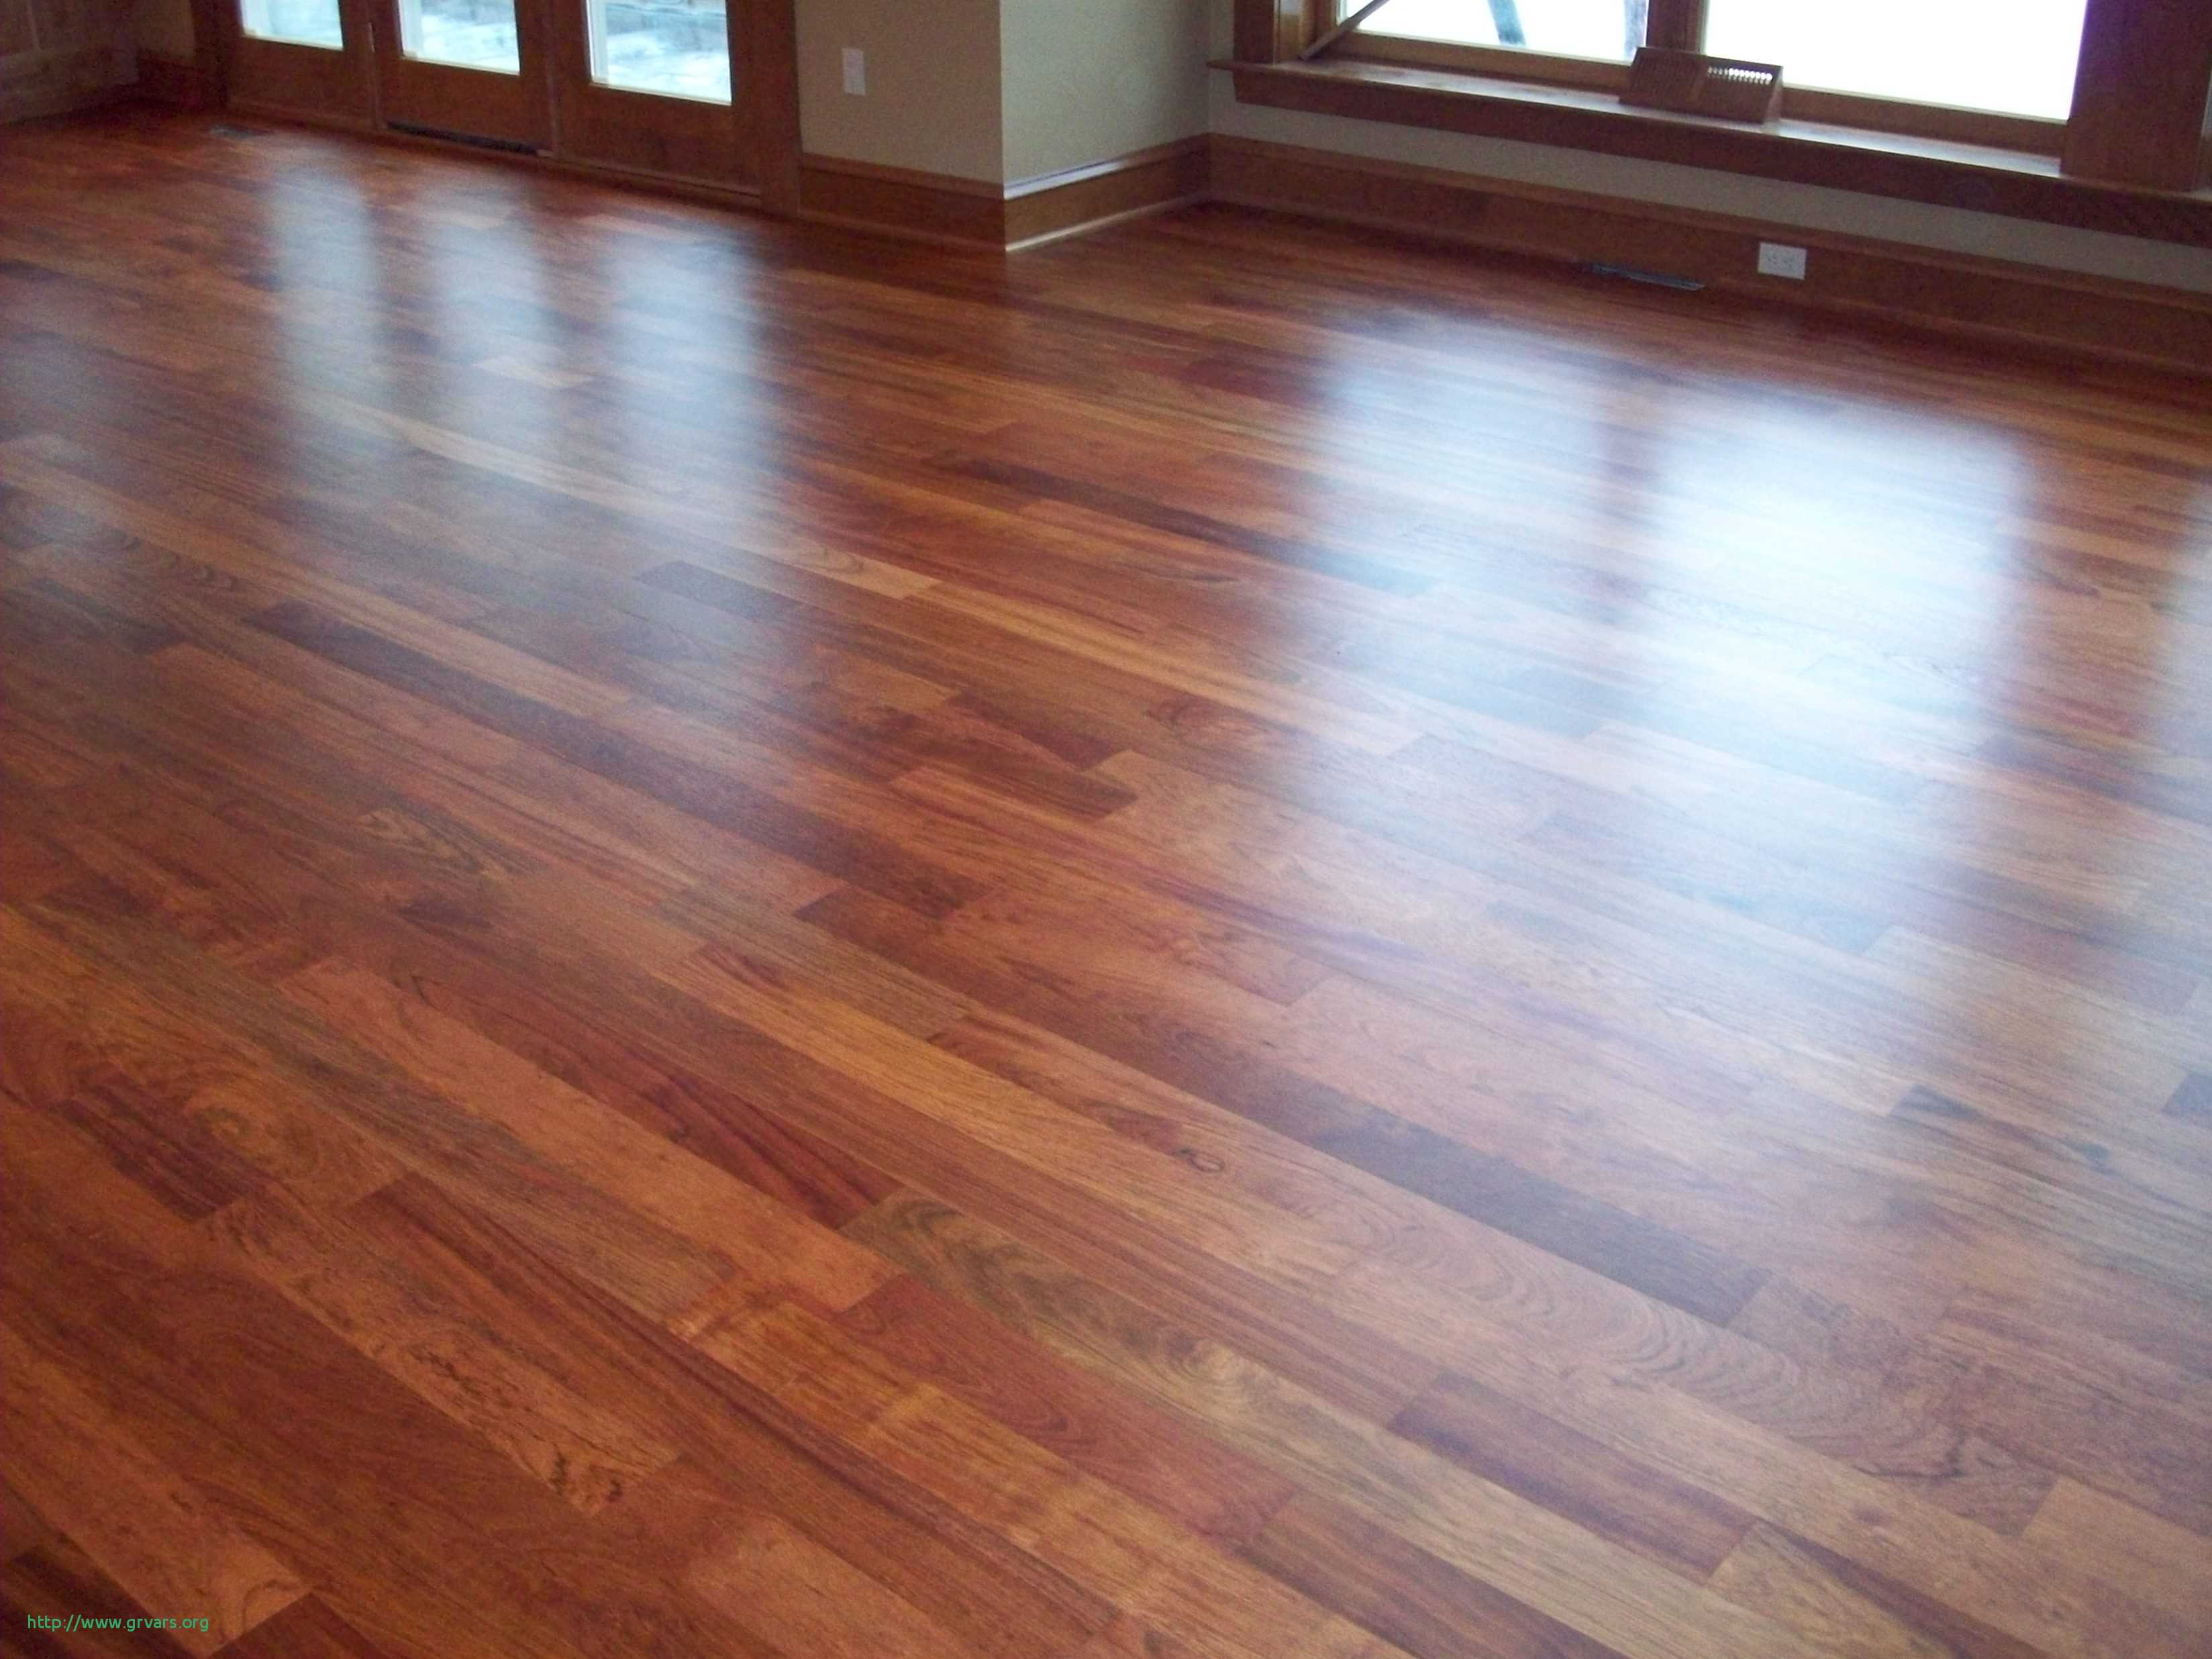 cheap hardwood flooring ontario of 24 beau best way to polish laminate flooring ideas blog throughout full size of bedroom fascinating discount hardwood flooring 12 discount hardwood flooring ohio